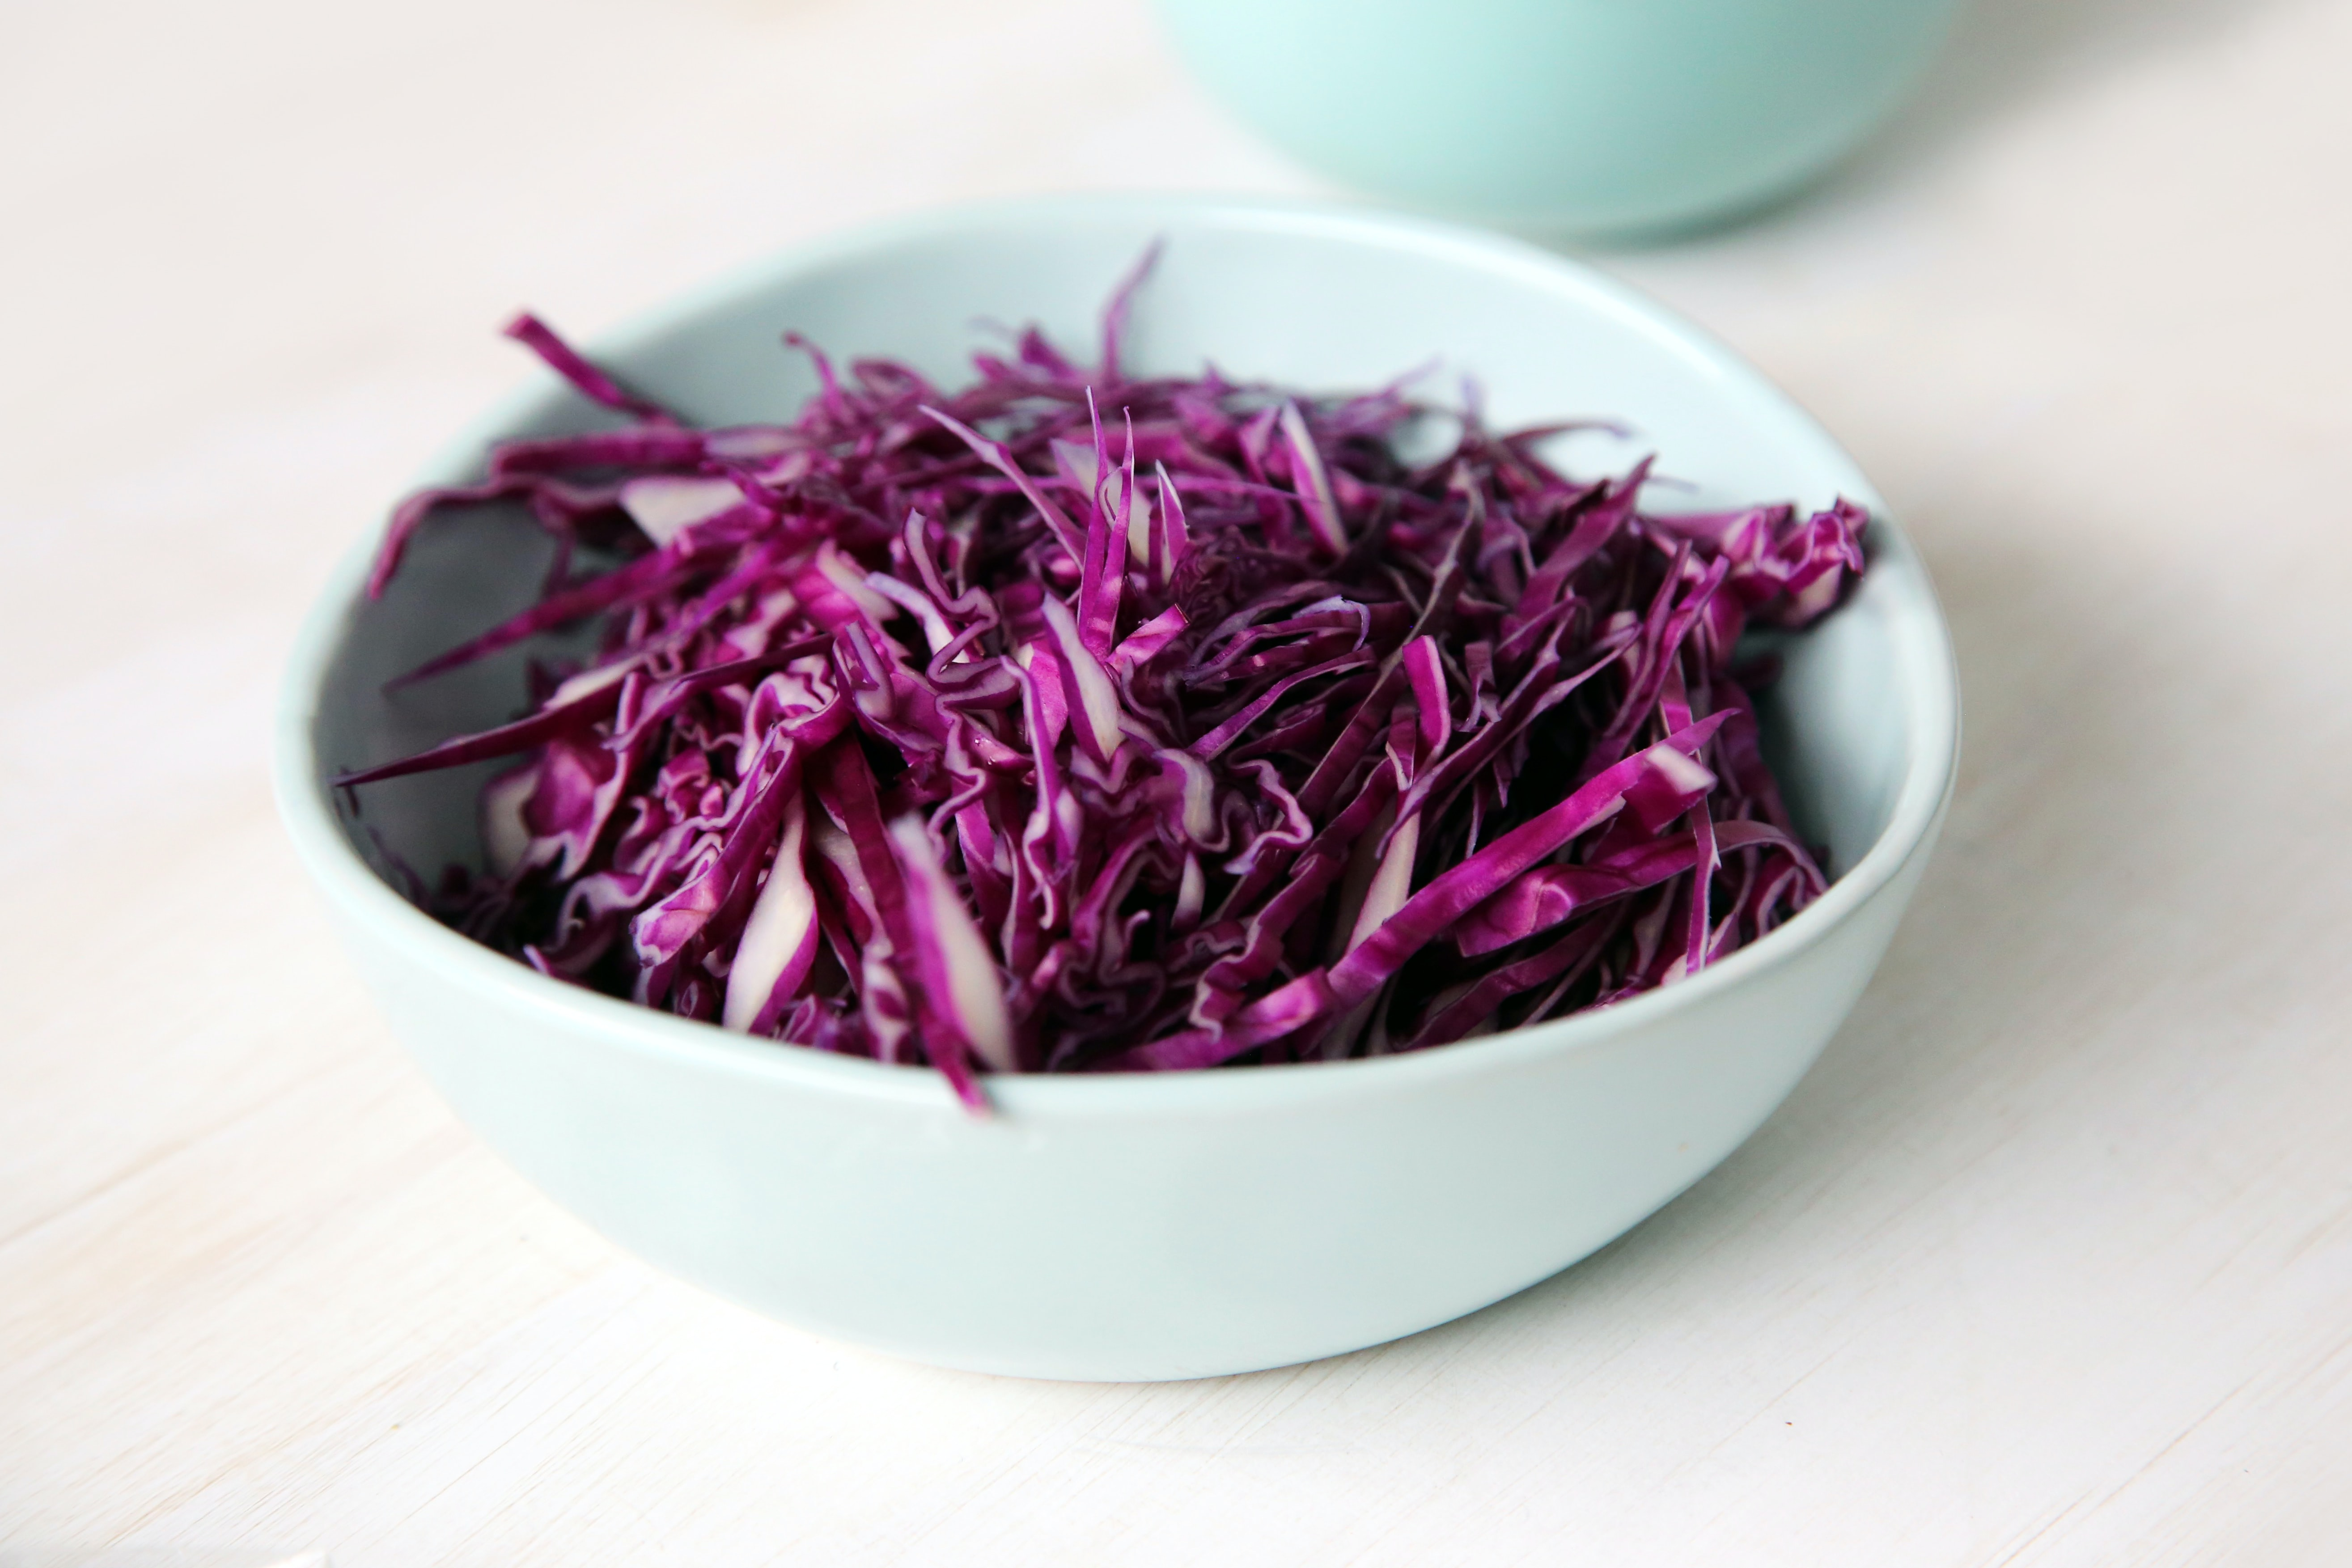 selective focus photography of purple petal filled bowl